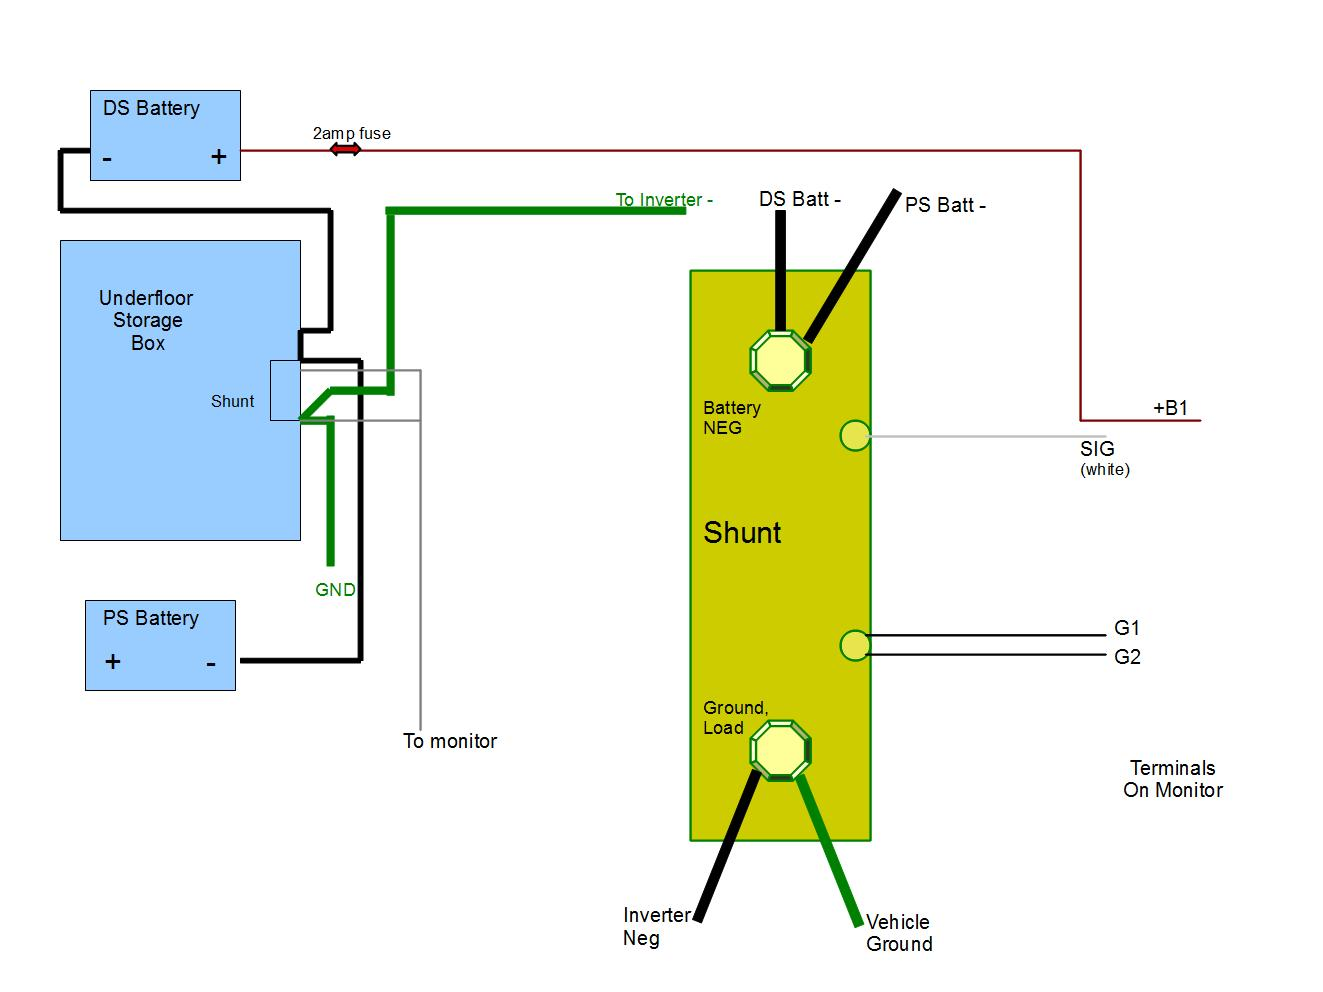 2s Meter Wiring Diagram 23 Images Diagrams Form Shunt Electric Installation